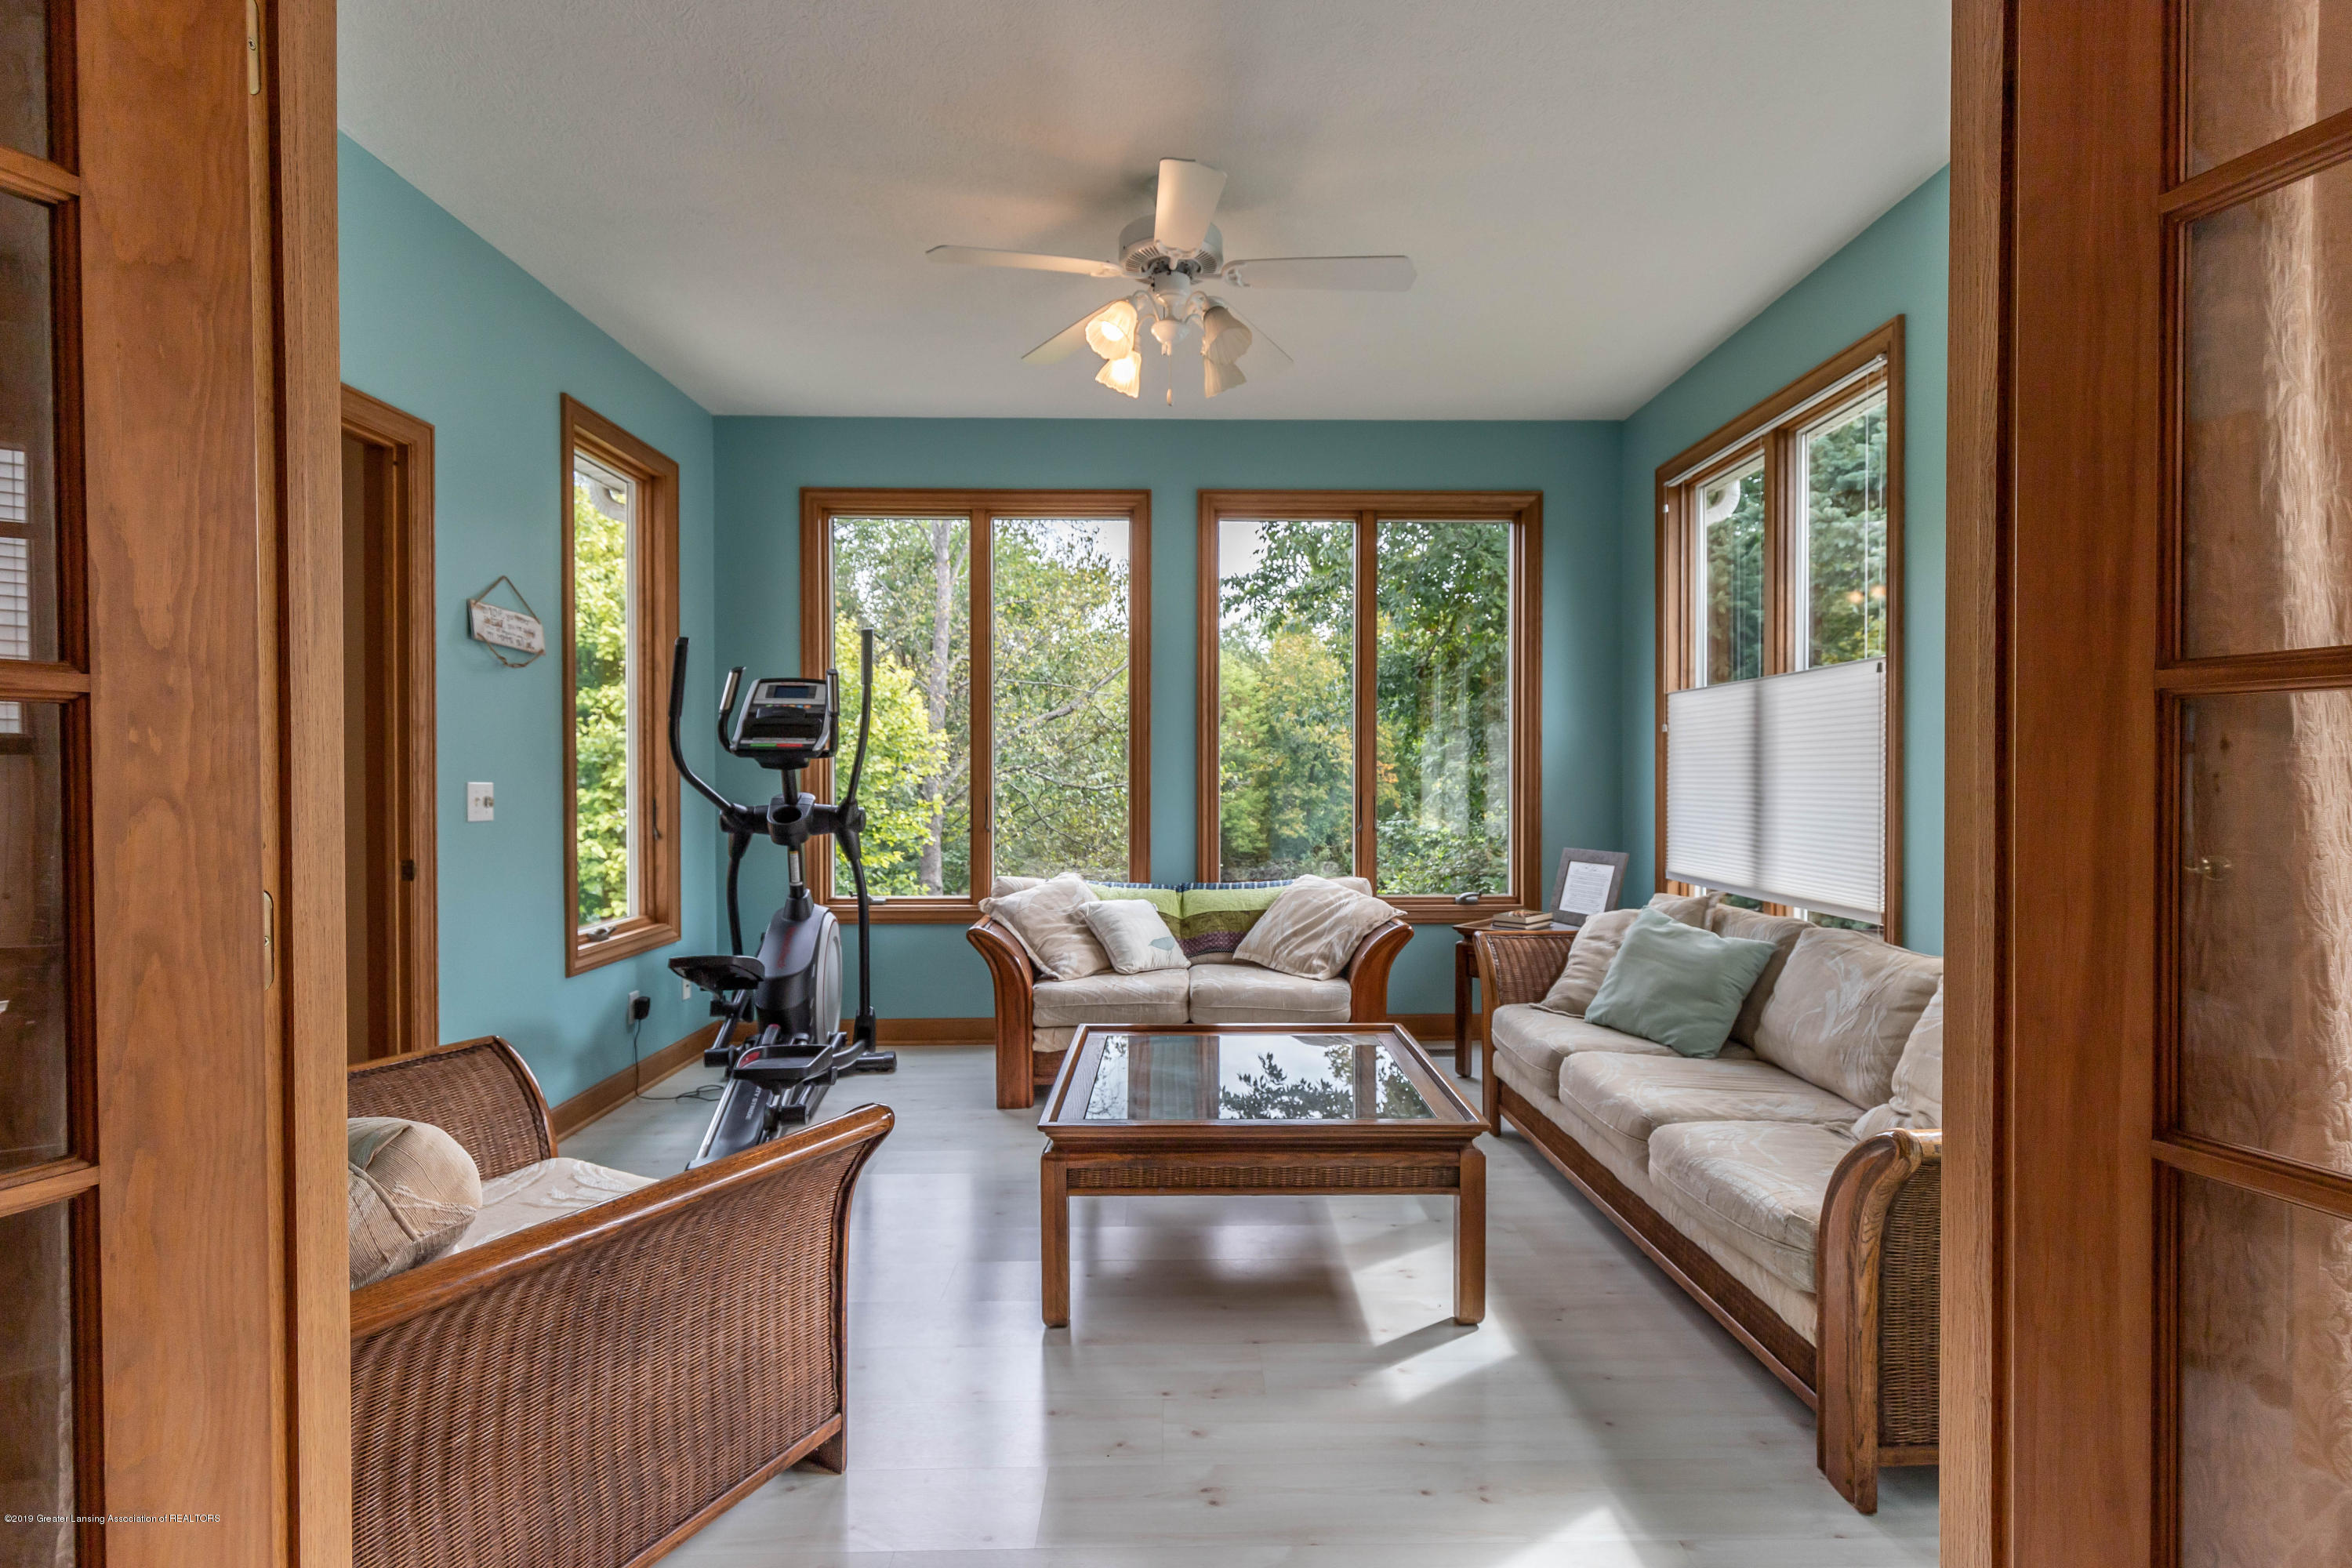 13185 Watercrest Dr - Sunroom - 21